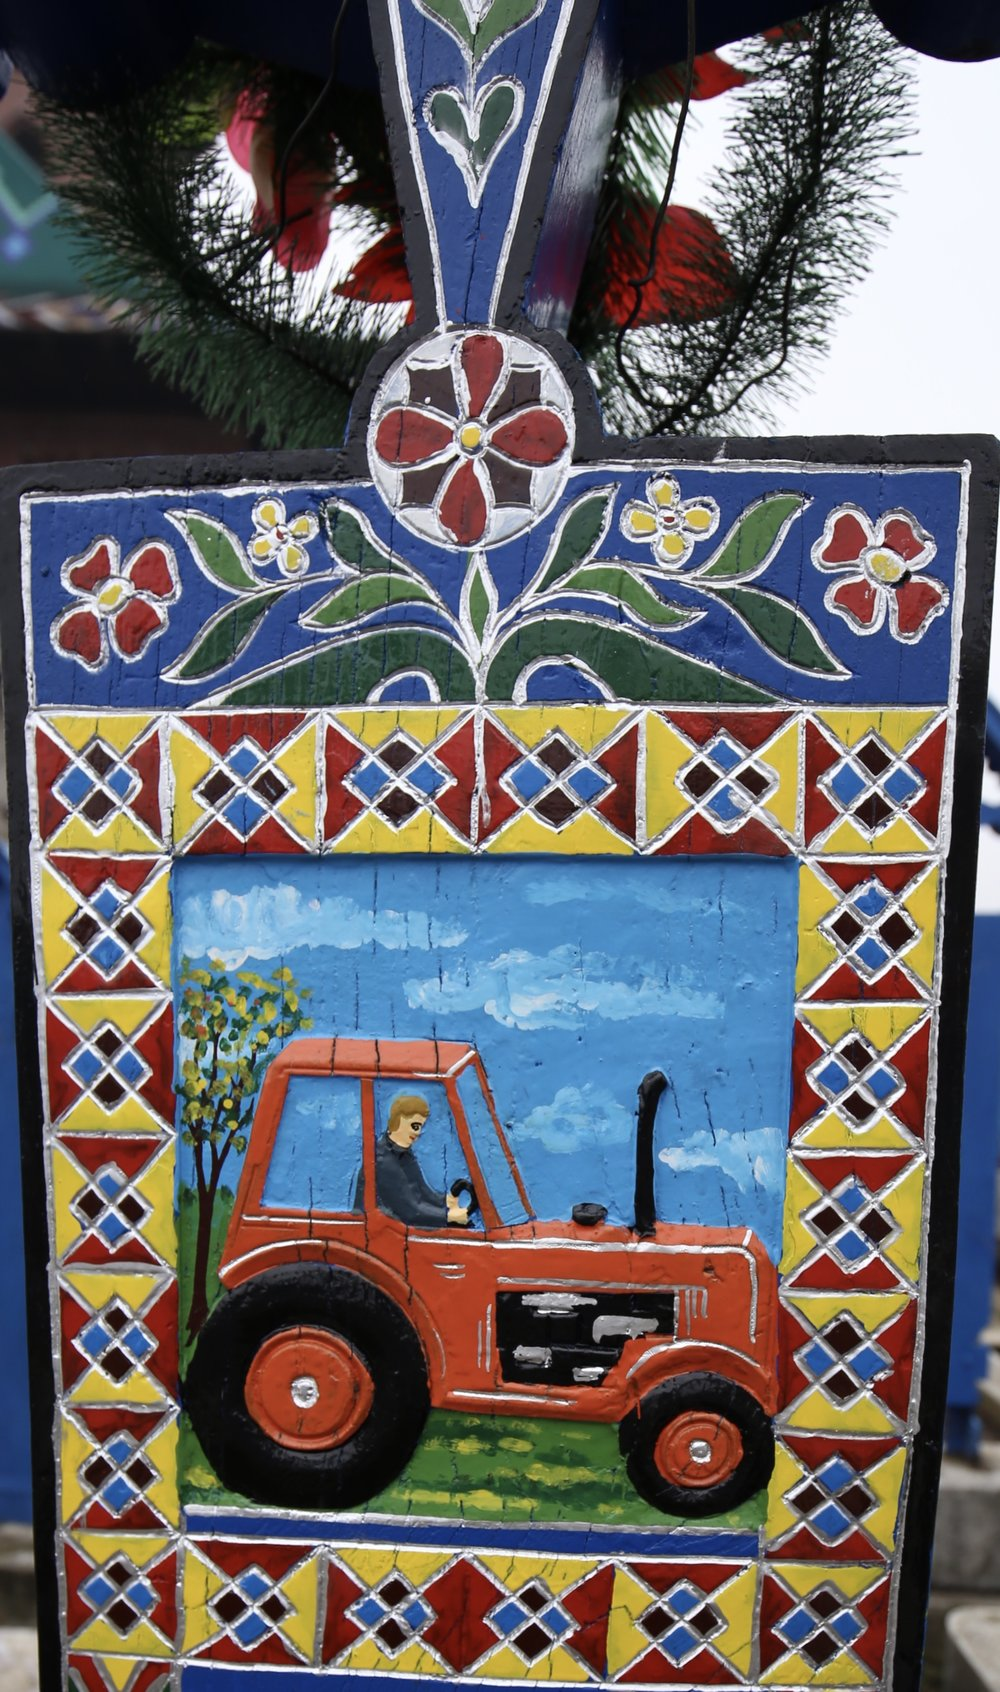 A grave marker in the Merry Cemetery - showing a bright painting of a tractor.